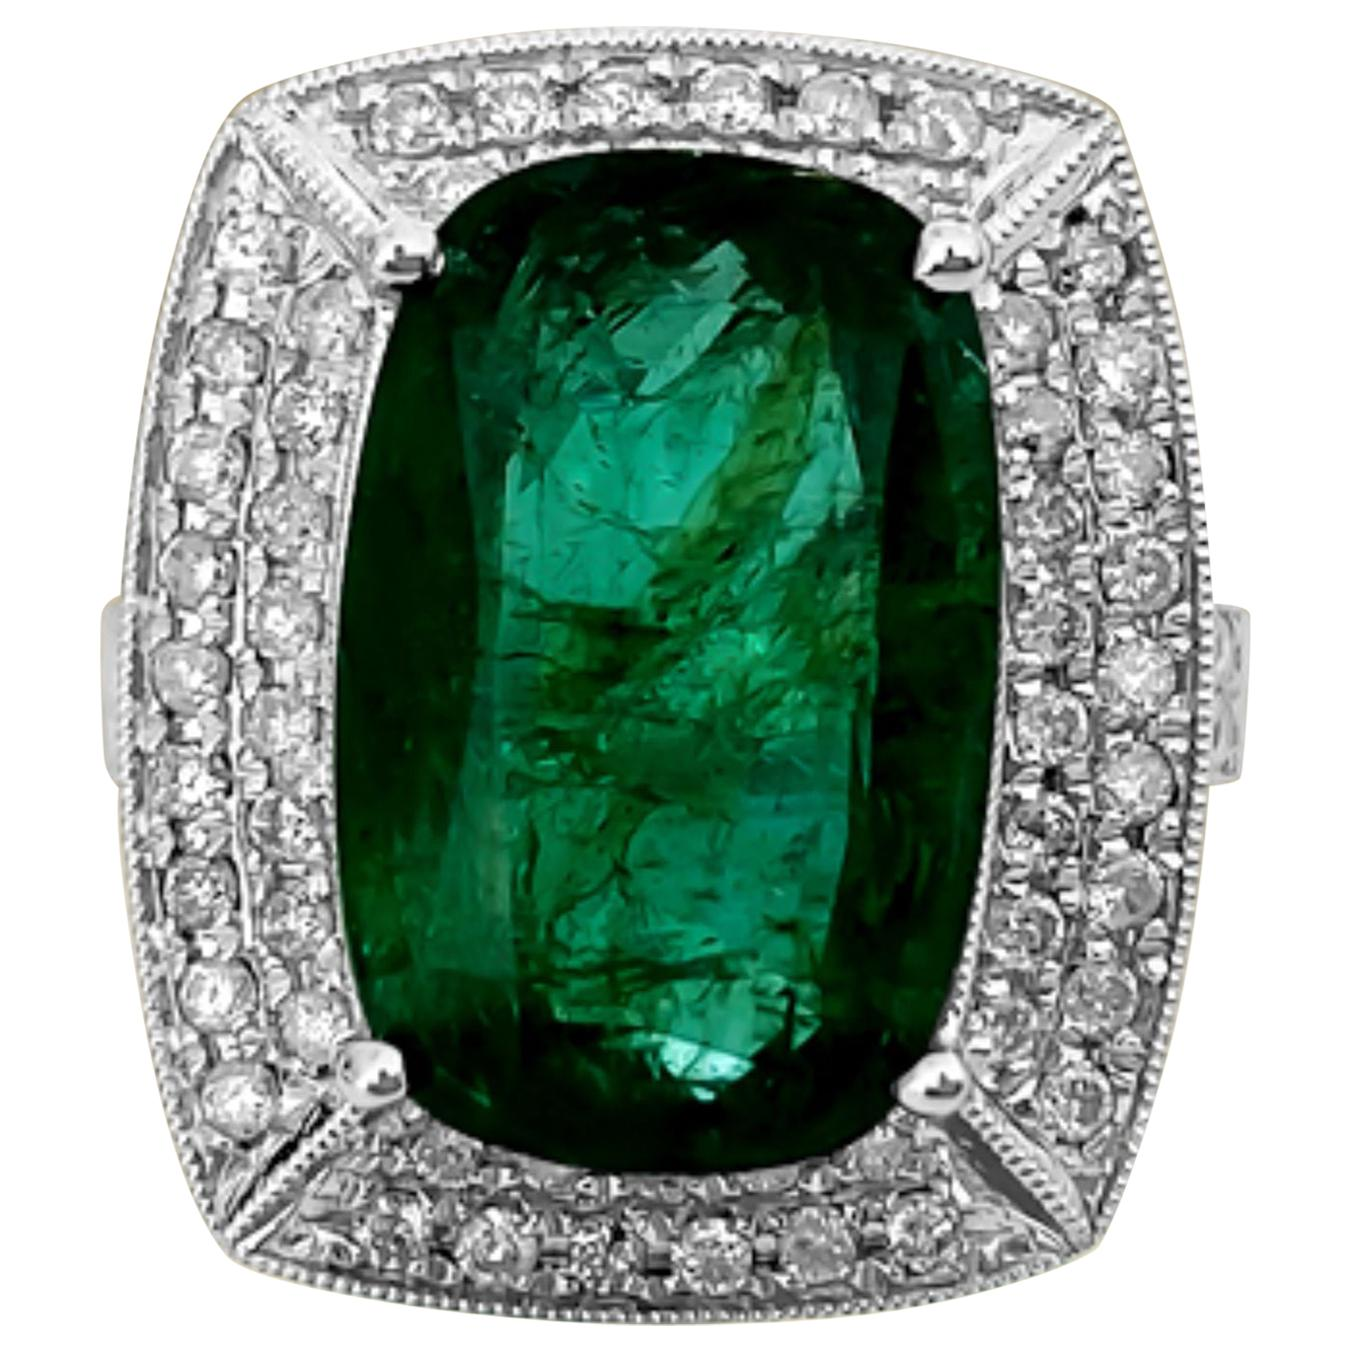 GIA Graduate Certified, 7.25 Carat Colombian Emerald and Diamond Ring